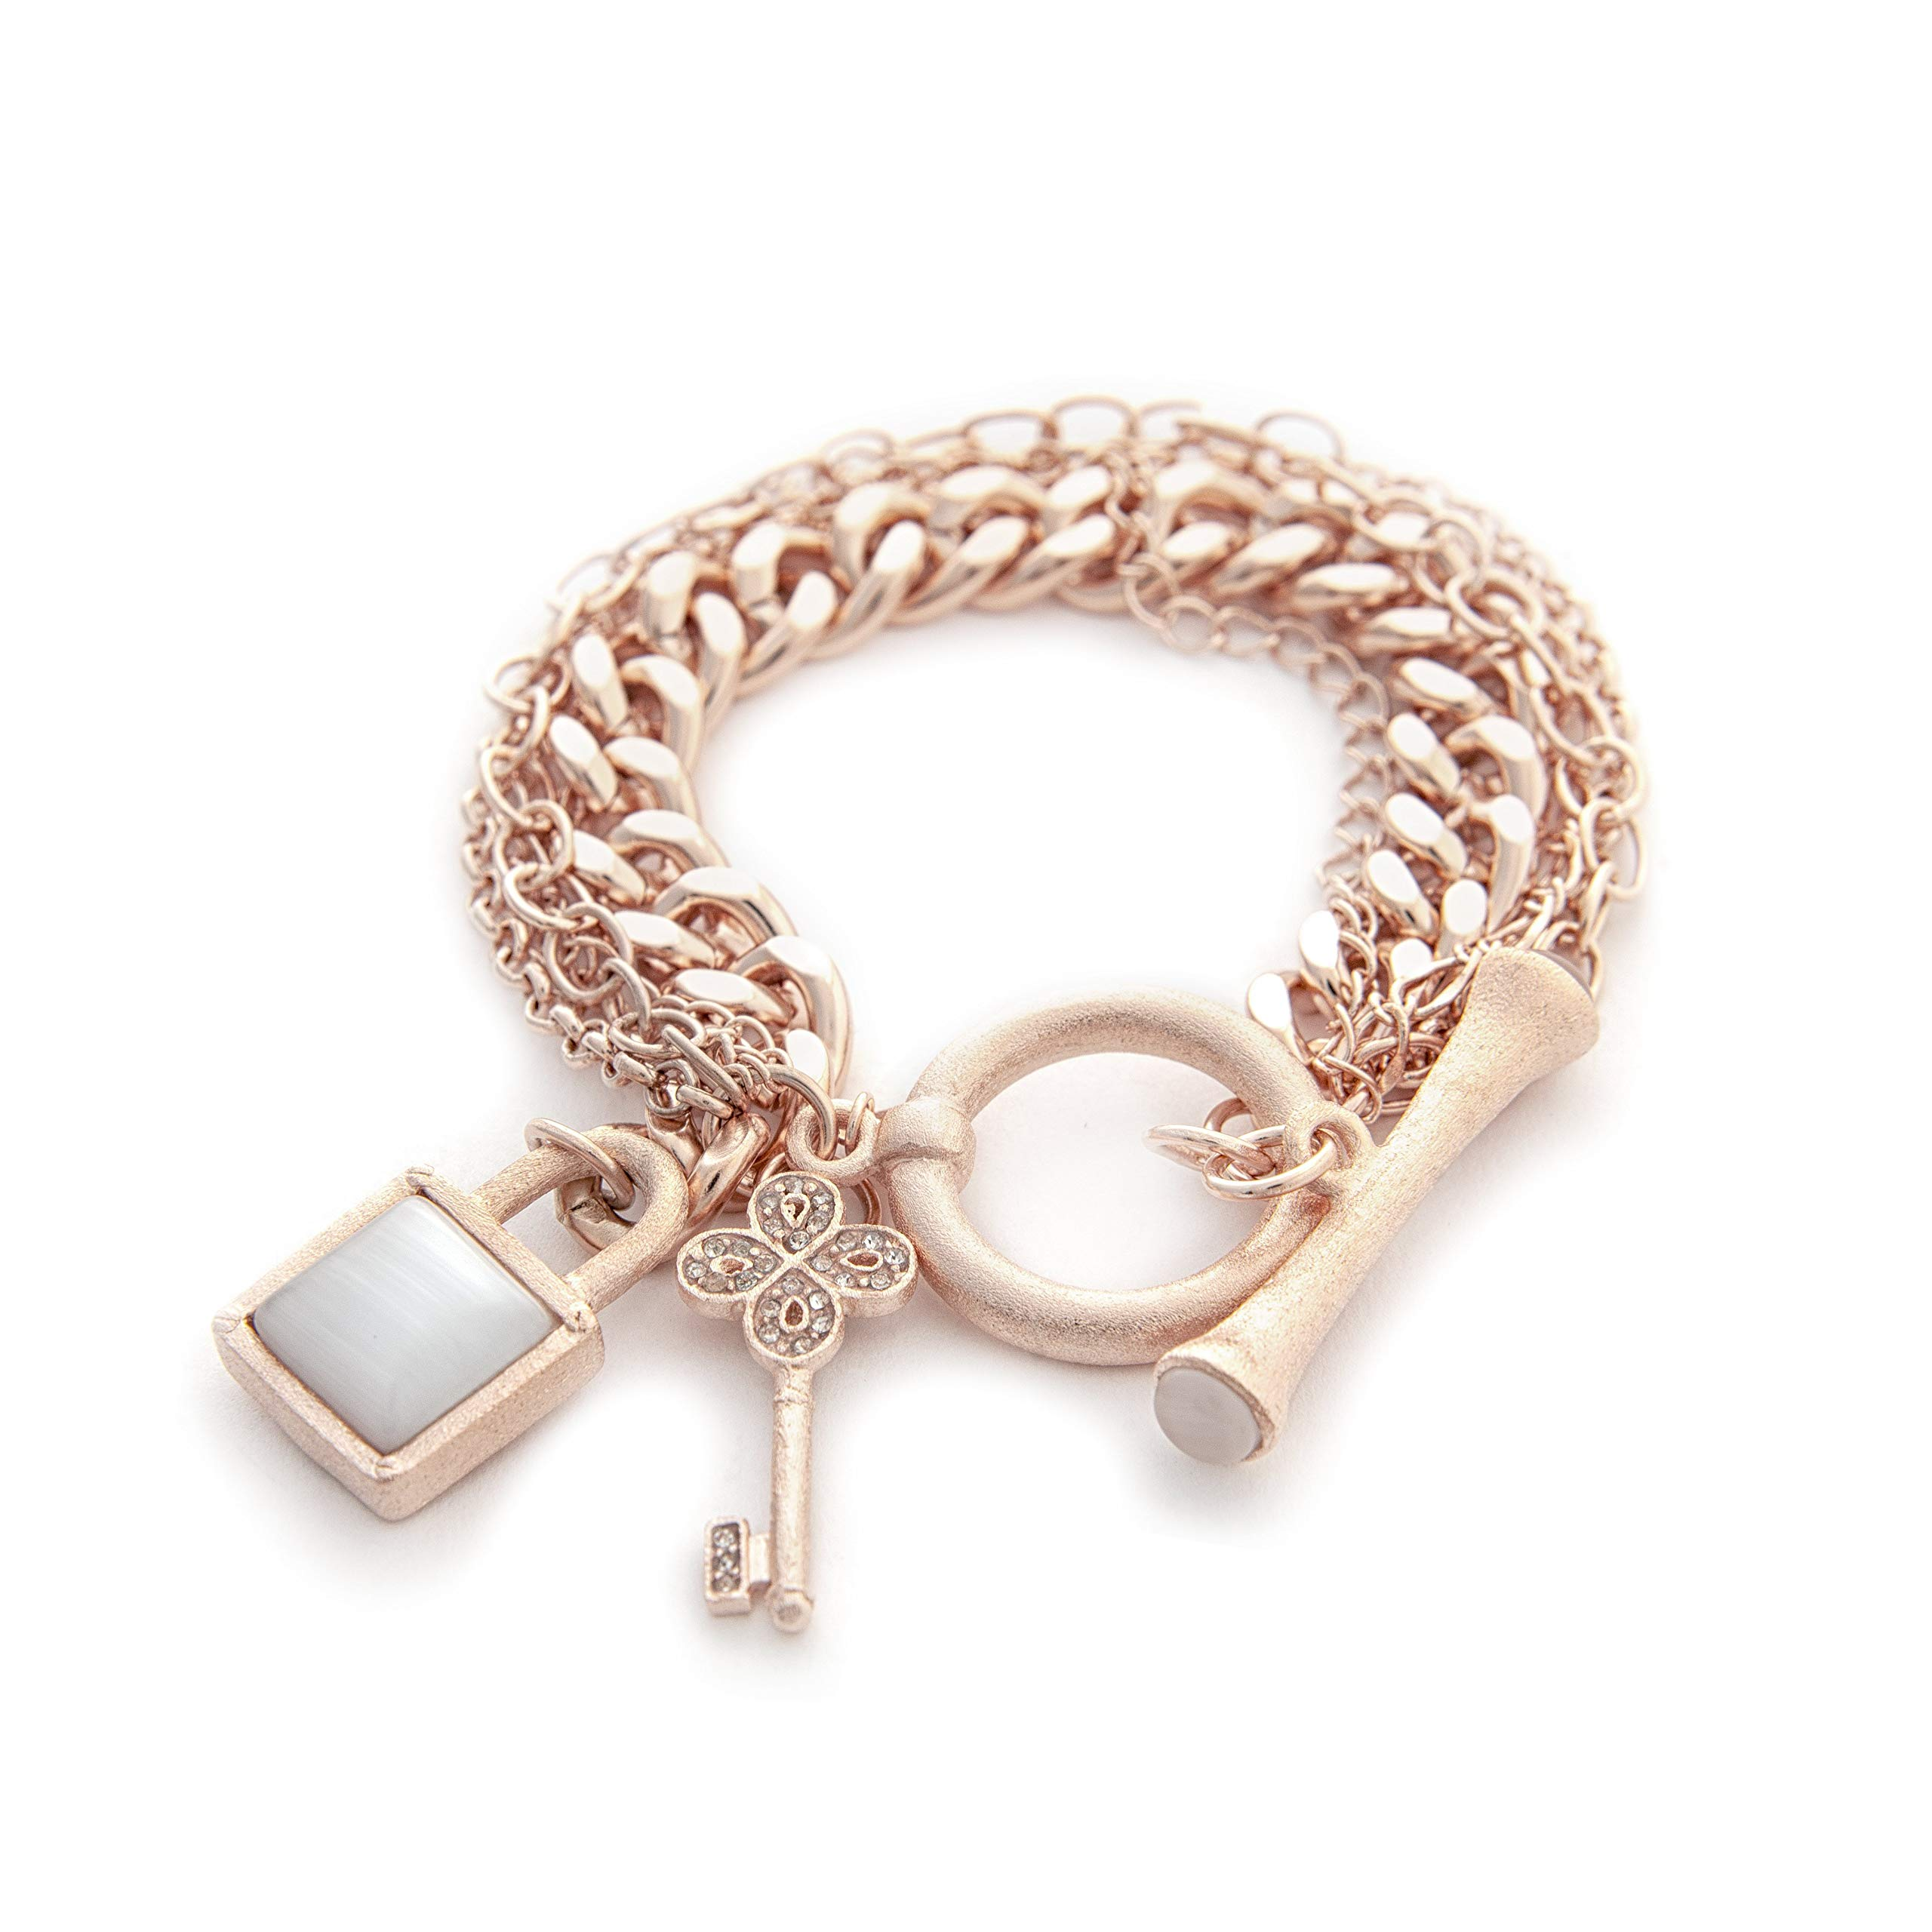 Rivka Friedman Multi Chain 18K Rose Gold Clad Gem Stone Charm Toggle Bracelet